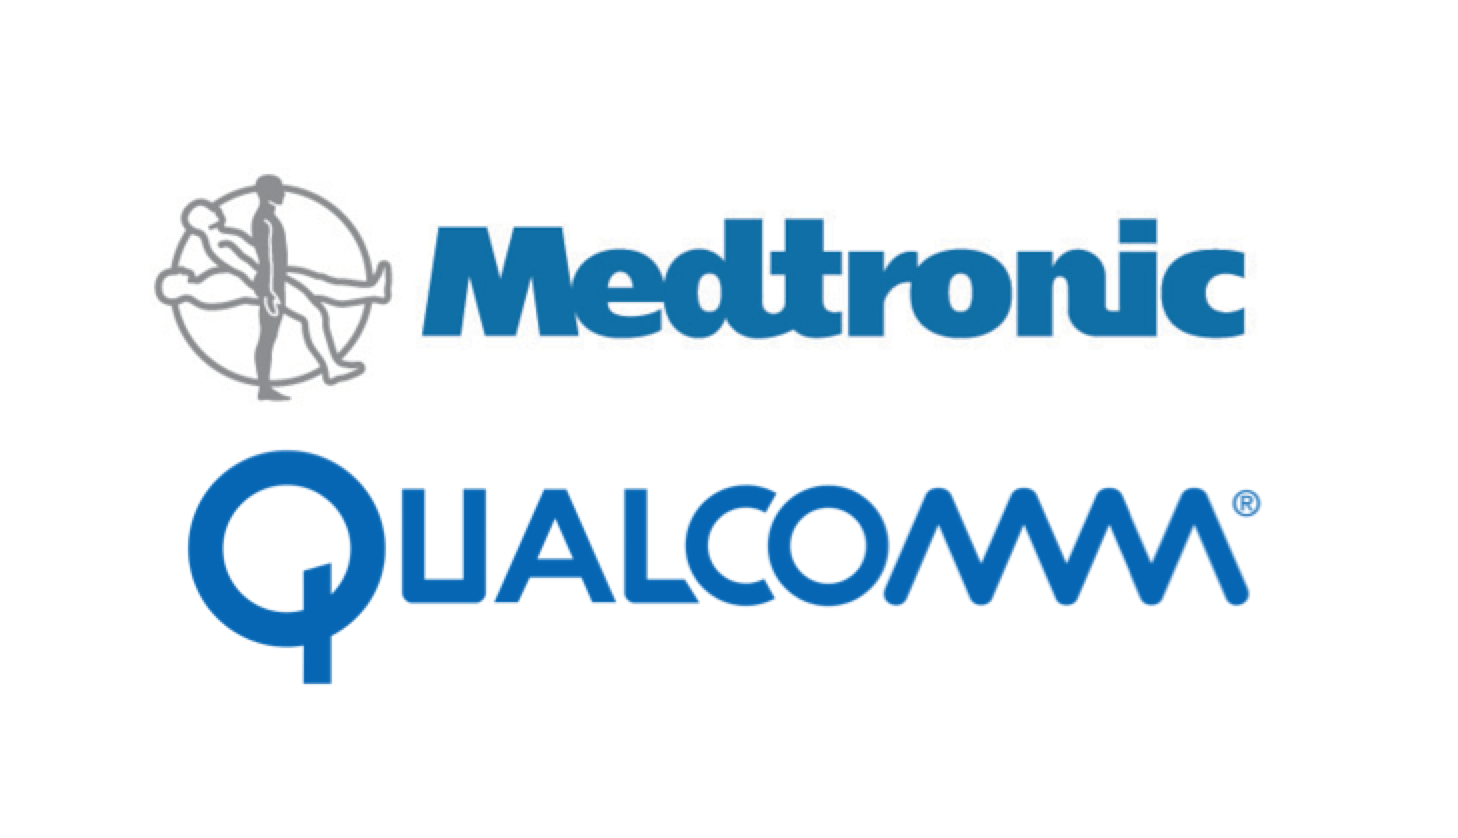 Qualcomm Logo - Medtronic and Qualcomm Partner To Develop Fully Disposable ...